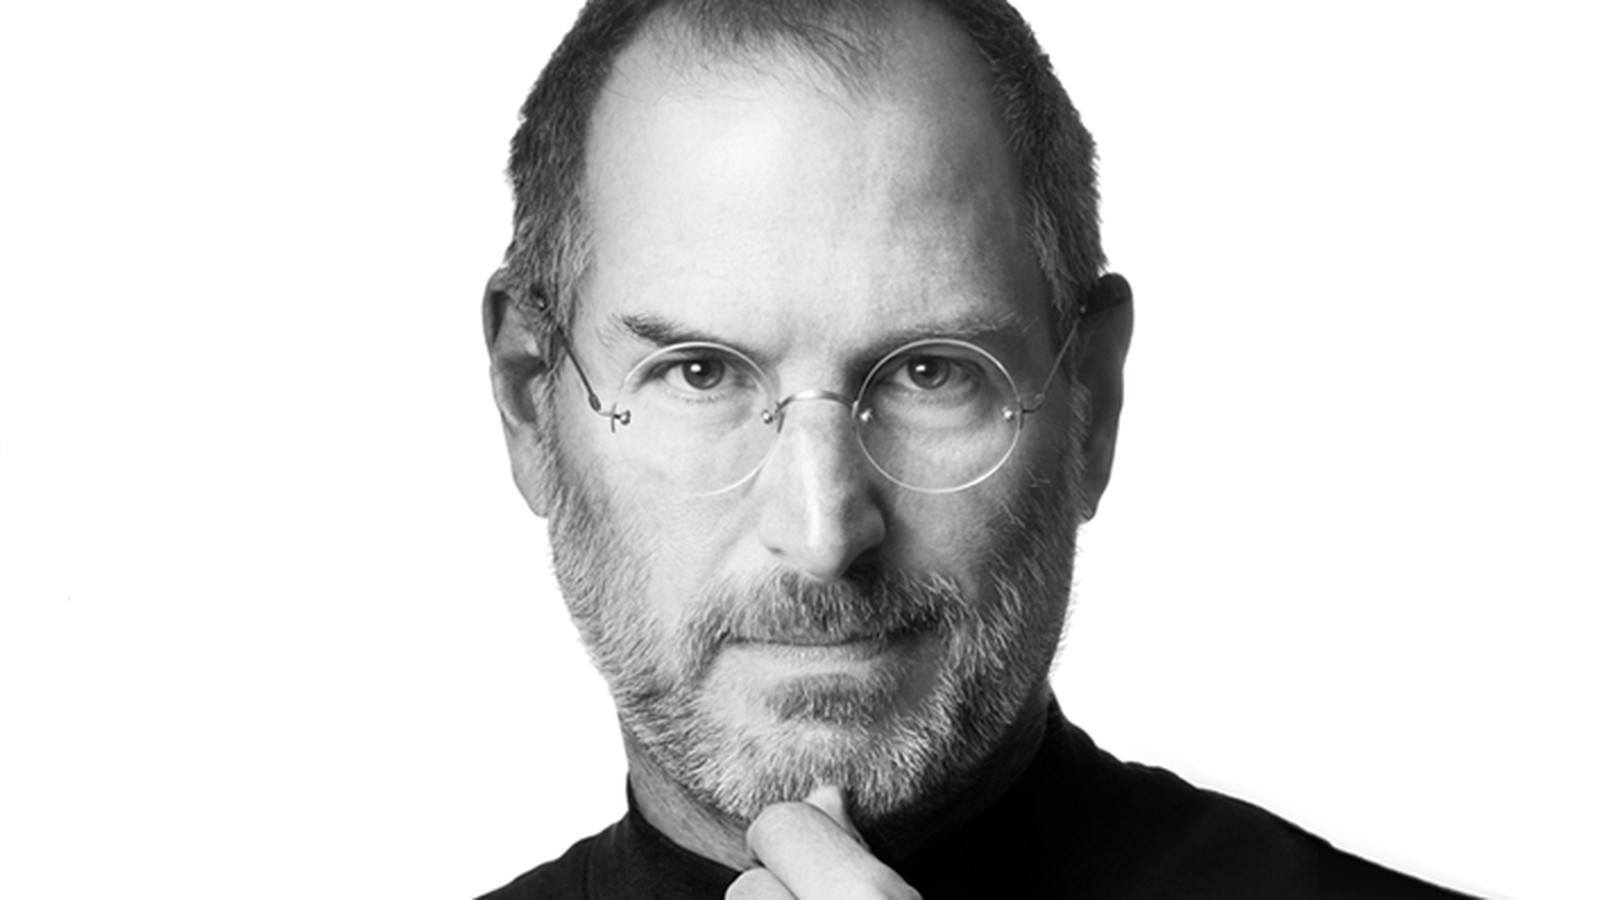 steve jobs reportedly had no interest in building an apple tv set steve jobs reportedly had no interest in building an apple tv set the verge